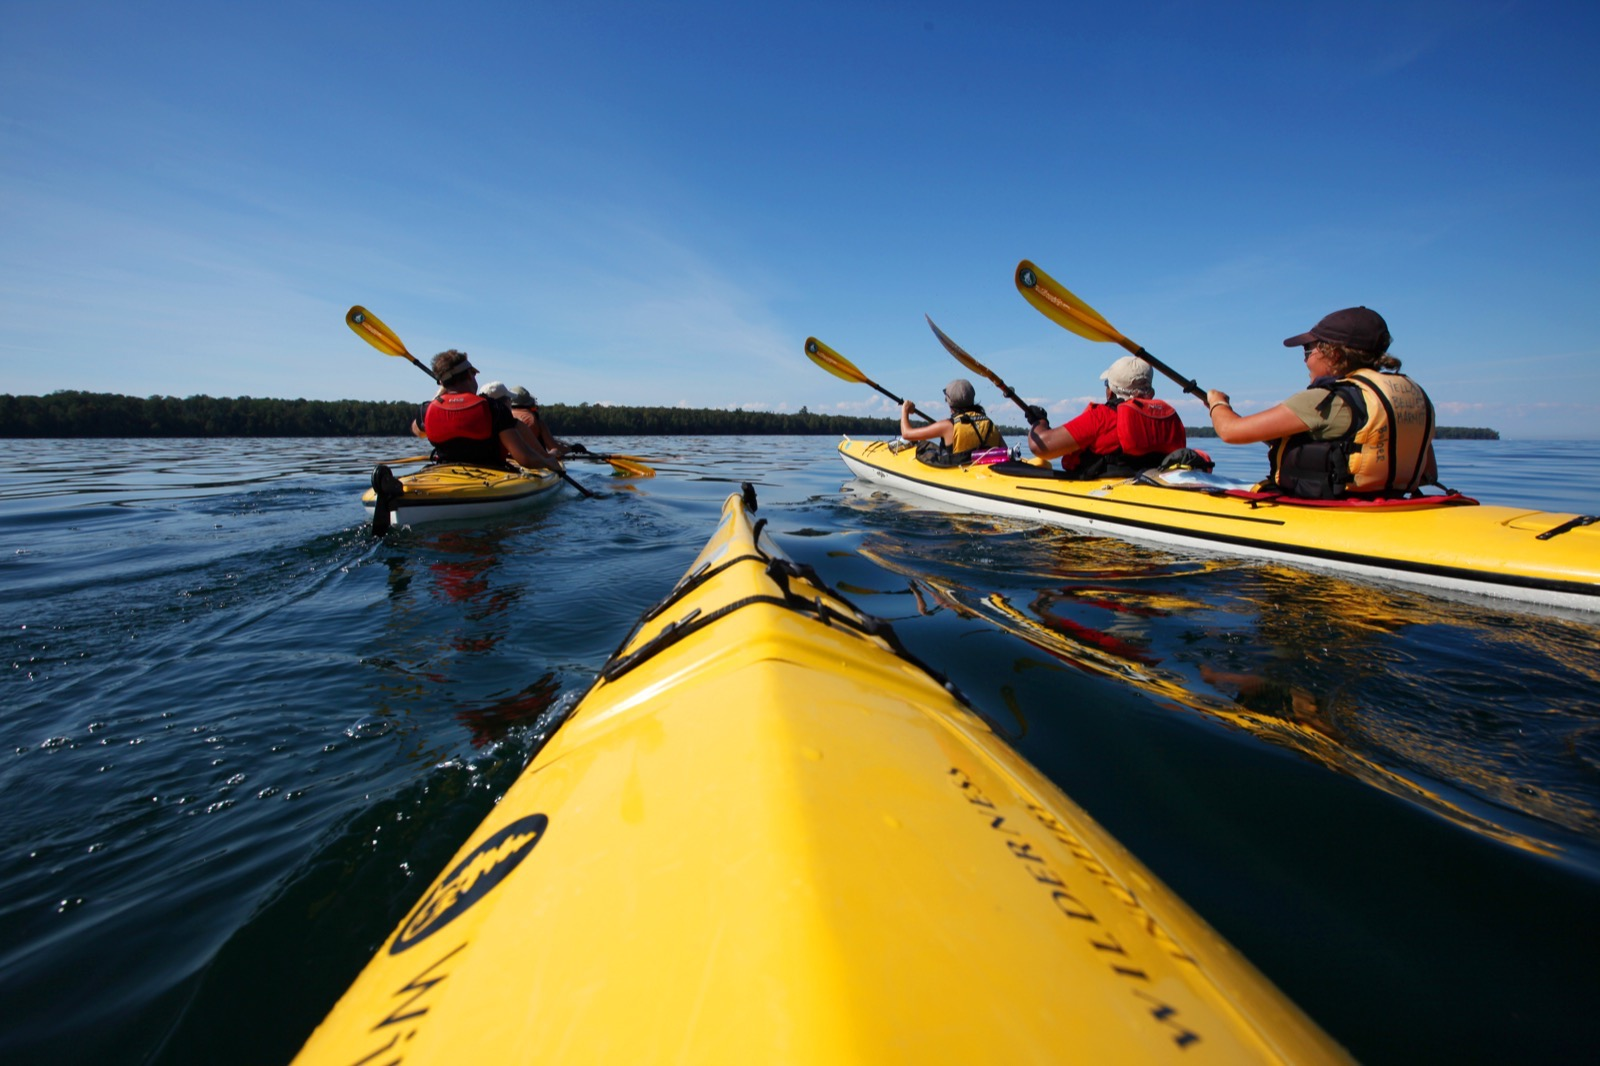 Adults paddling three yellow kayaks on Lake Superior.